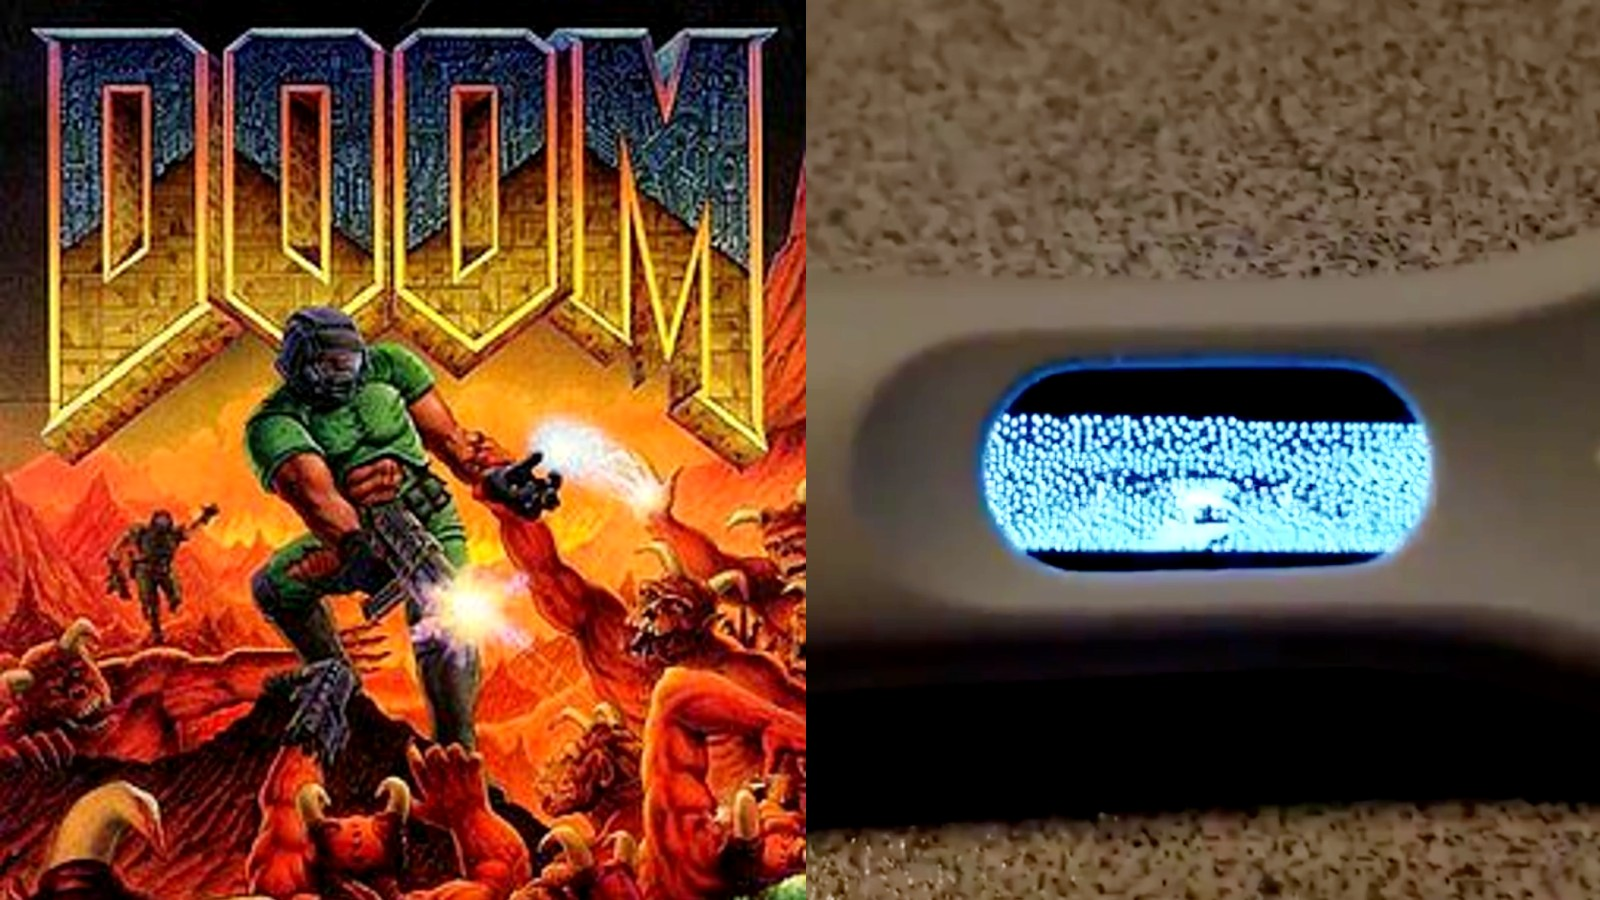 Doom running on a pregnancy test